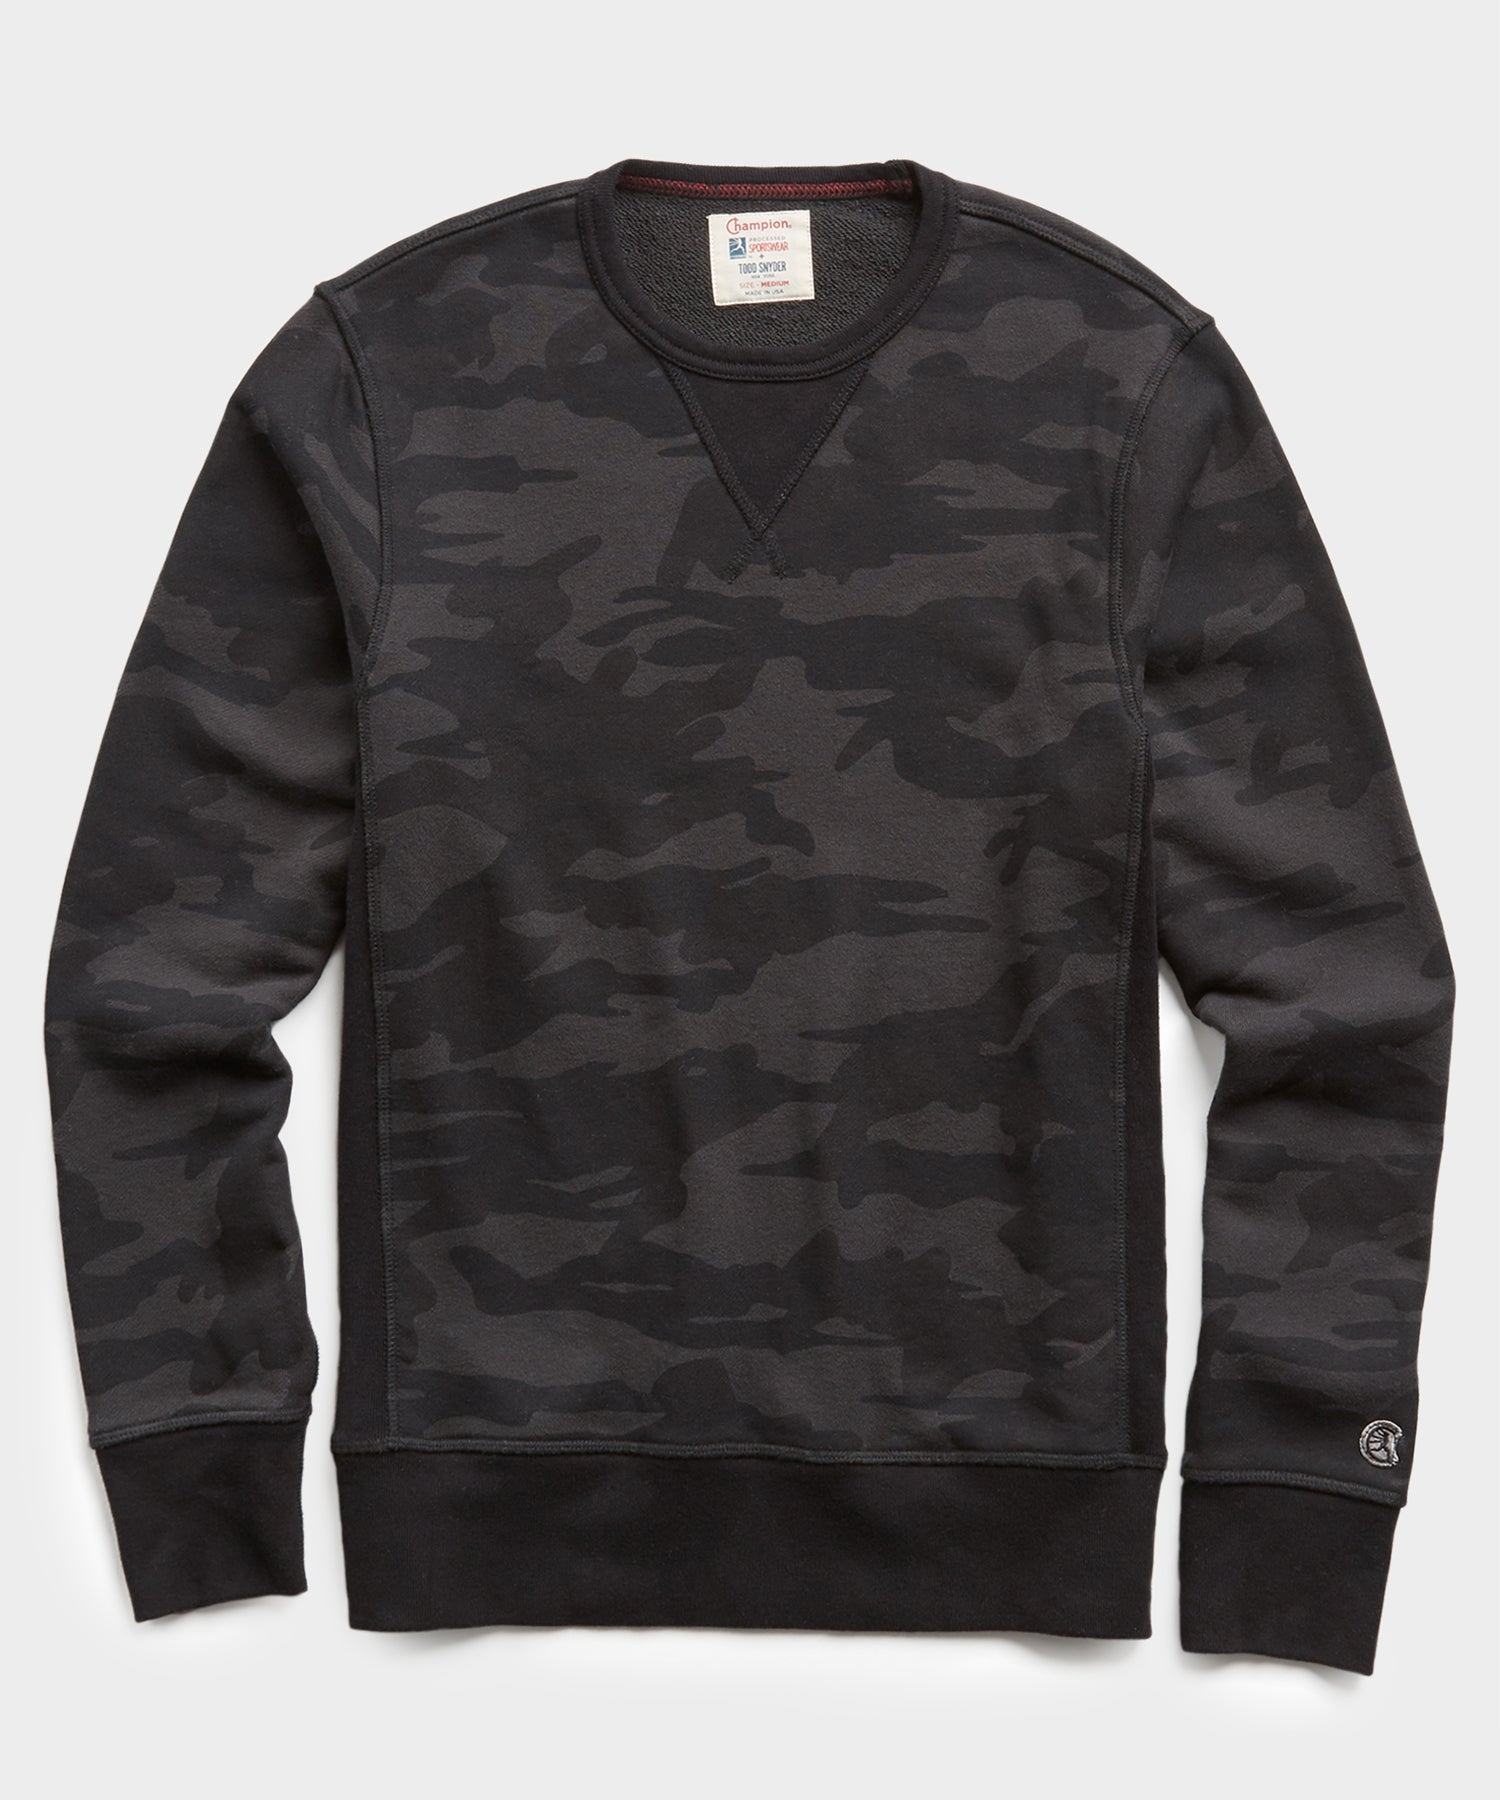 Camo Slim Fit Crewneck Sweatshirt in Black